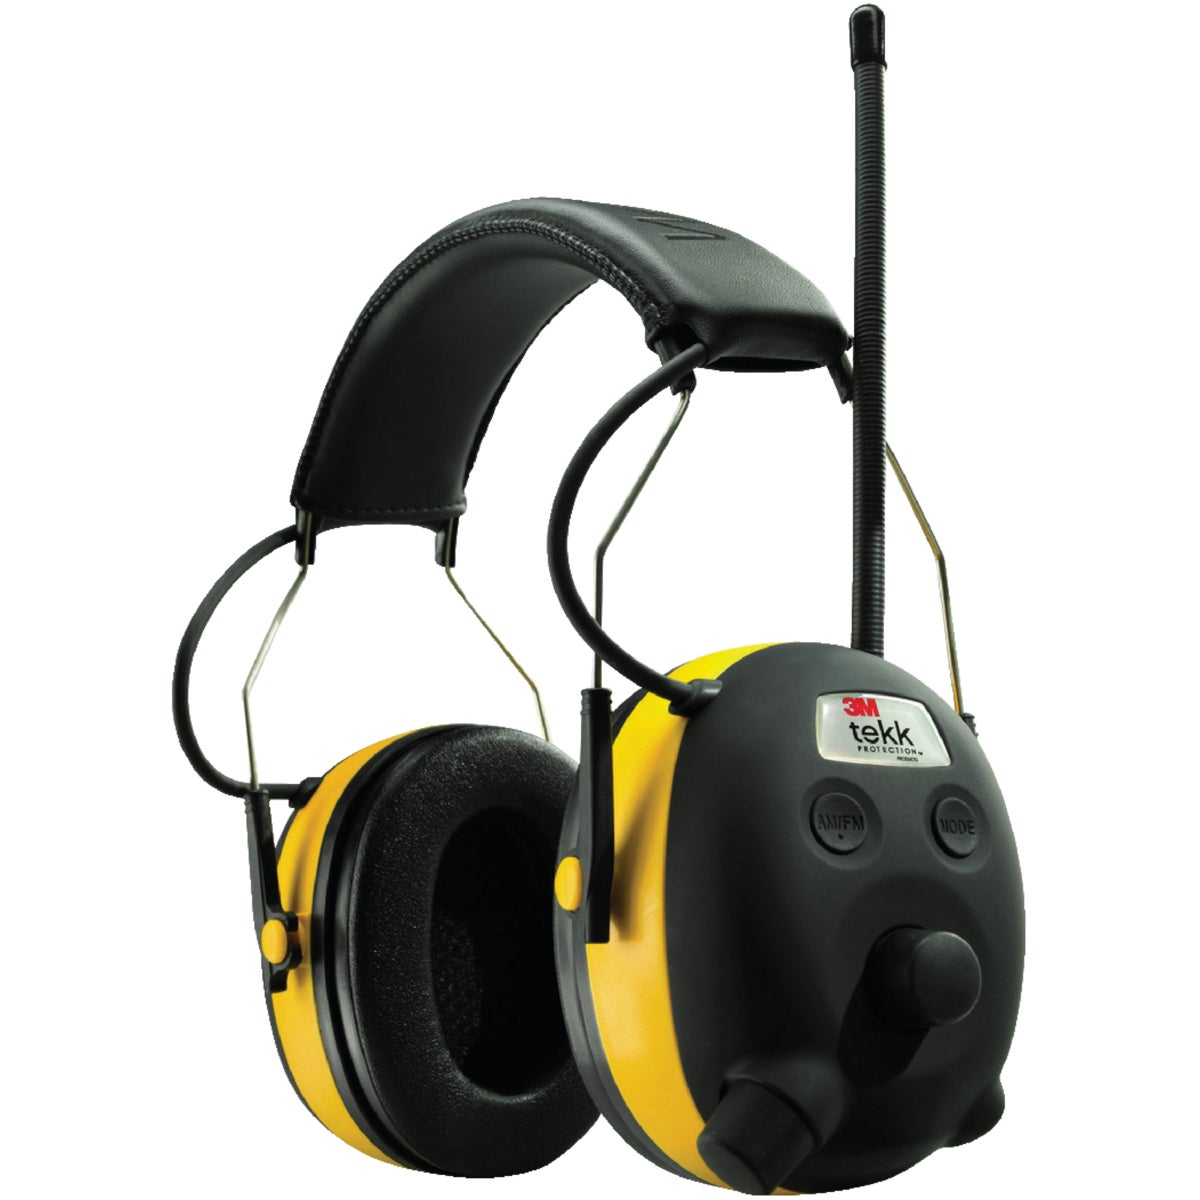 STEREO HEARING PROTECTOR - 9054-80025T by 3m Co